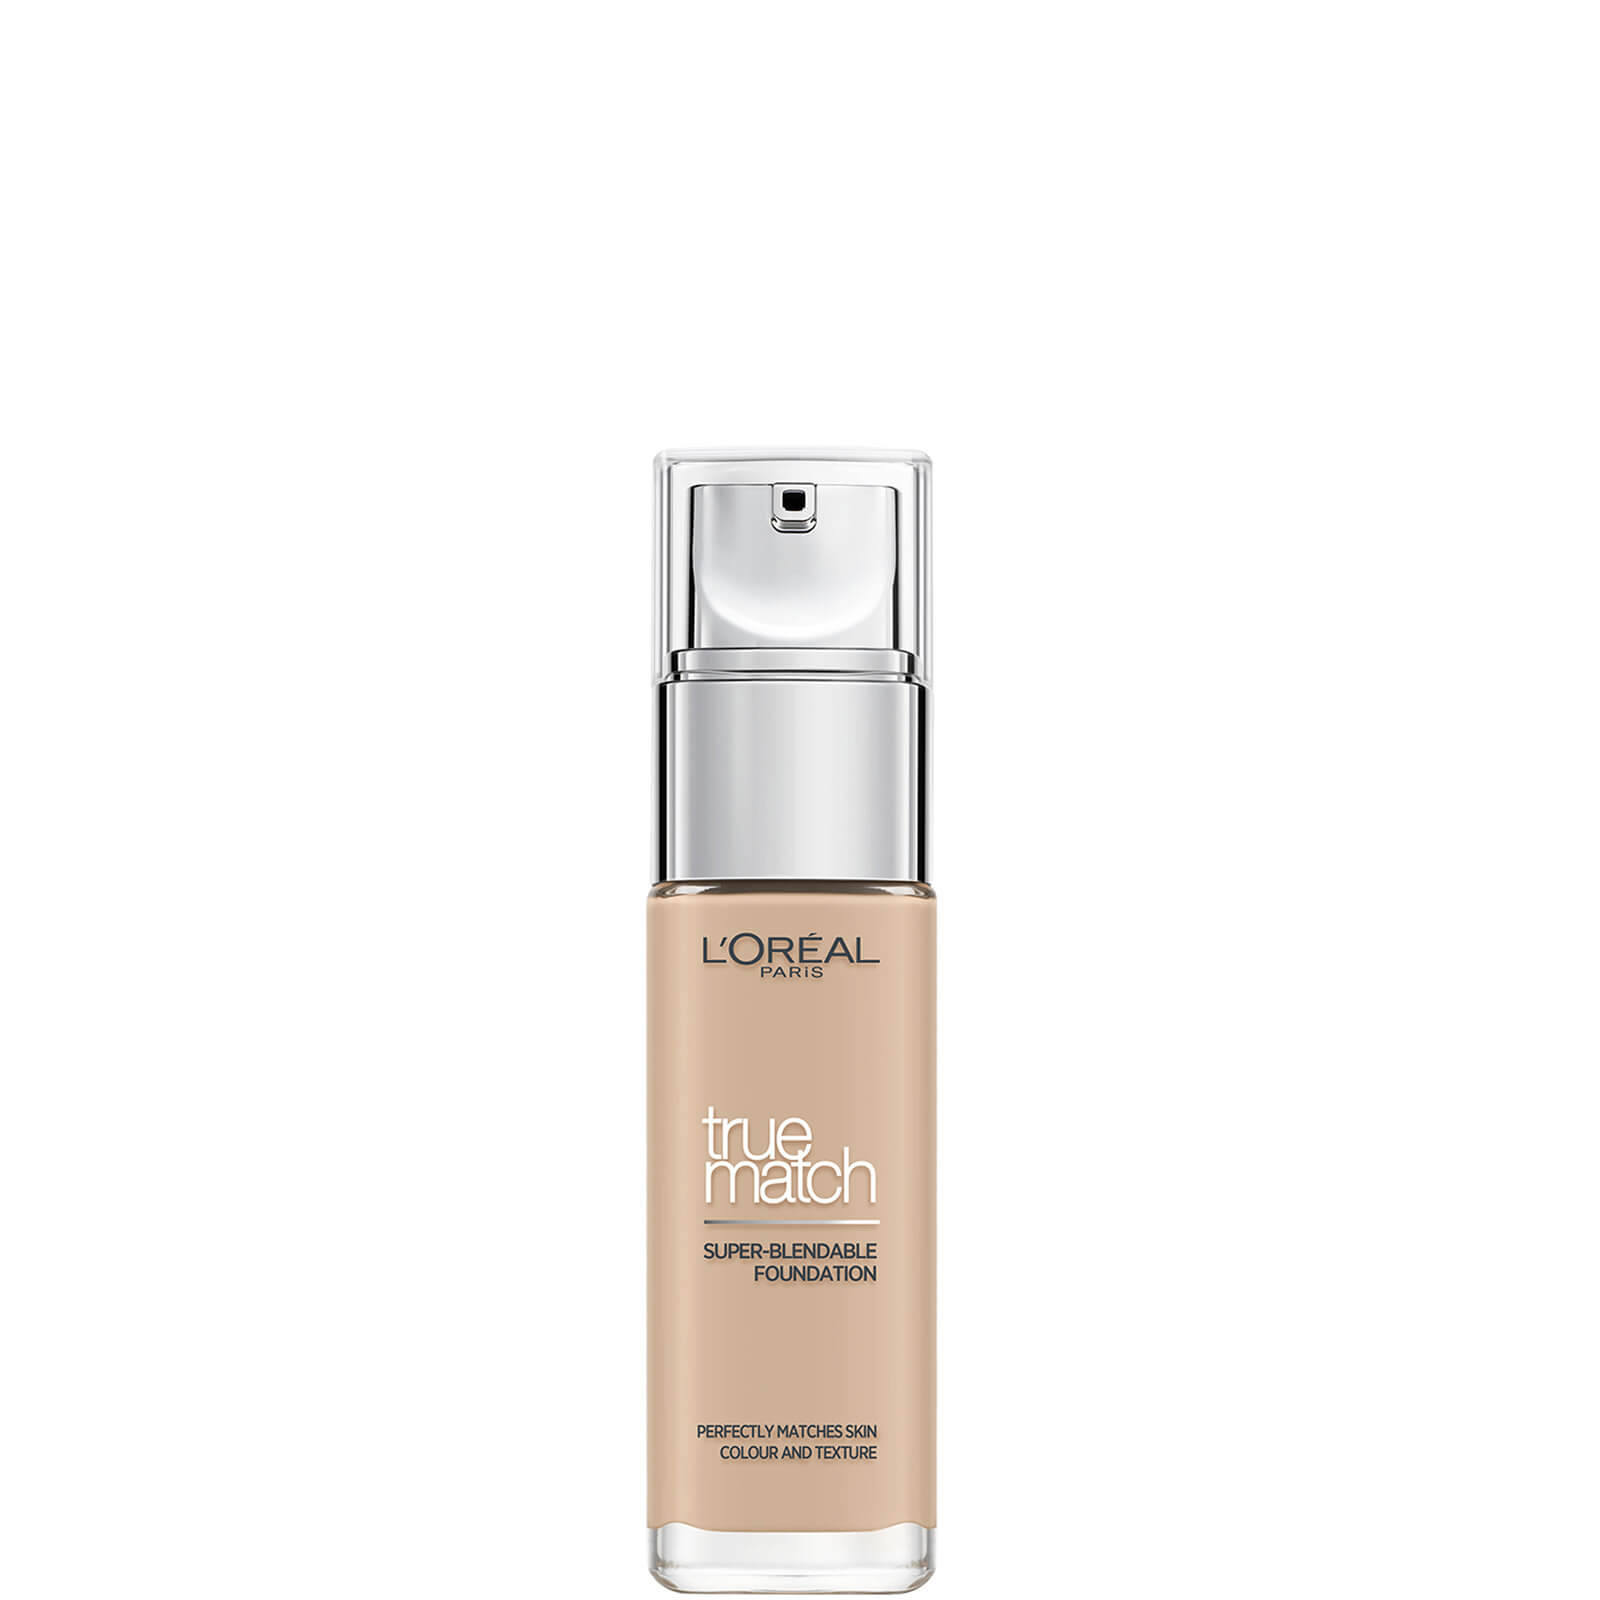 L'Oréal Paris True Match Liquid Foundation with SPF and Hyaluronic Acid 30ml (Various Shades) - Rose Vanilla